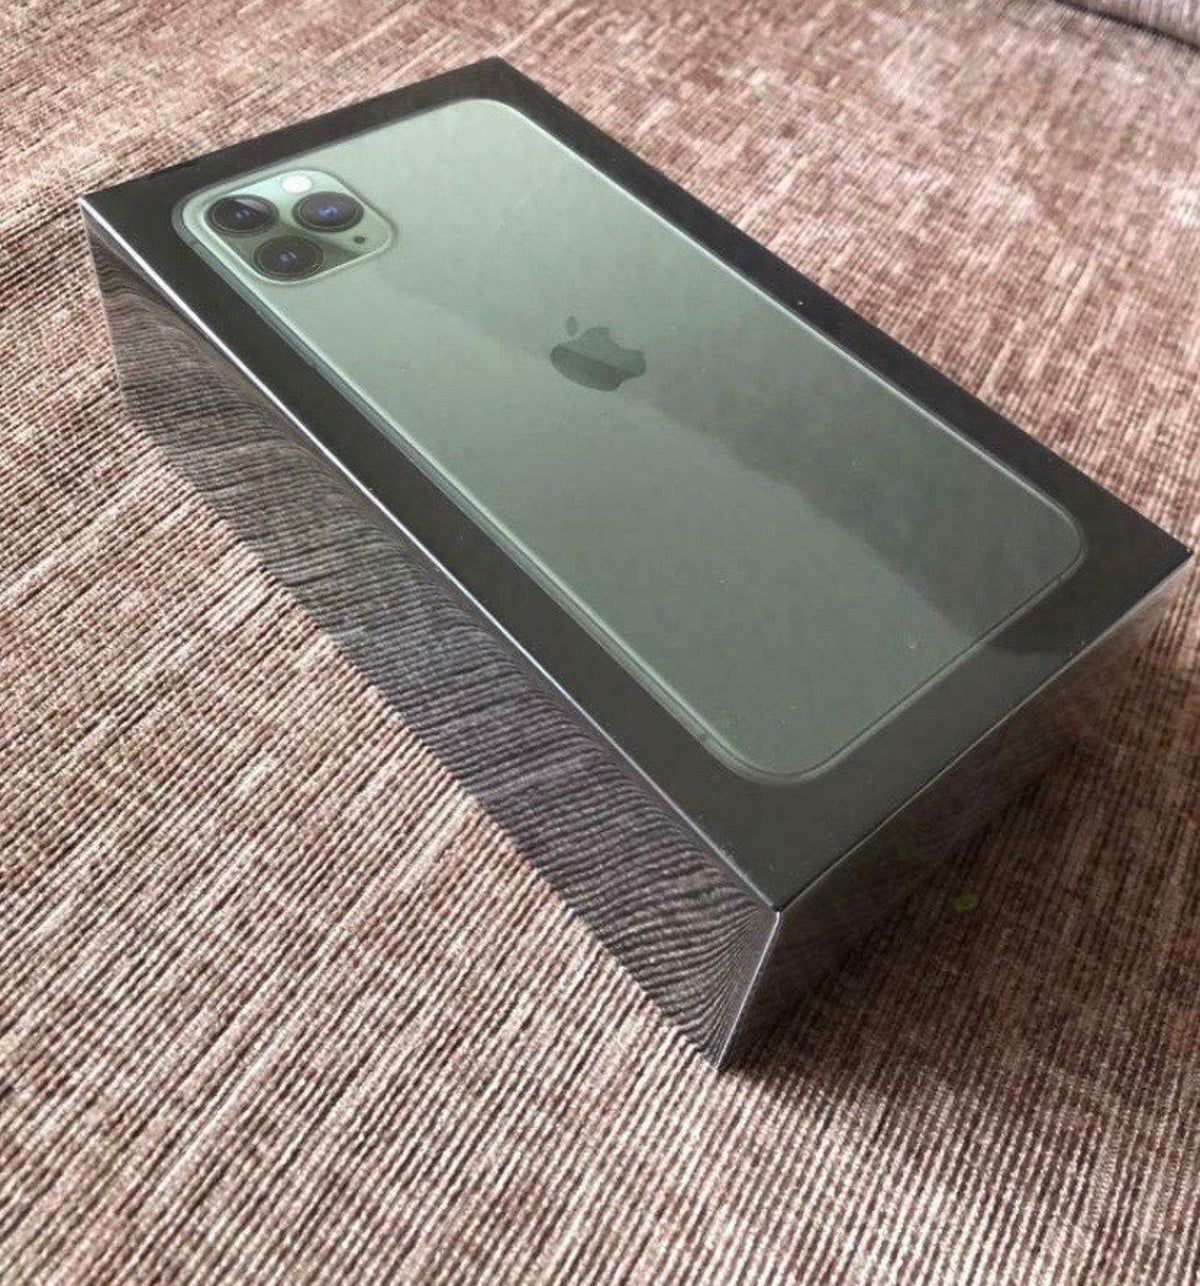 Iphone 11 Pro Max Midnight Green 64 Gb In 2021 Iphone Iphone 11 Apple Products